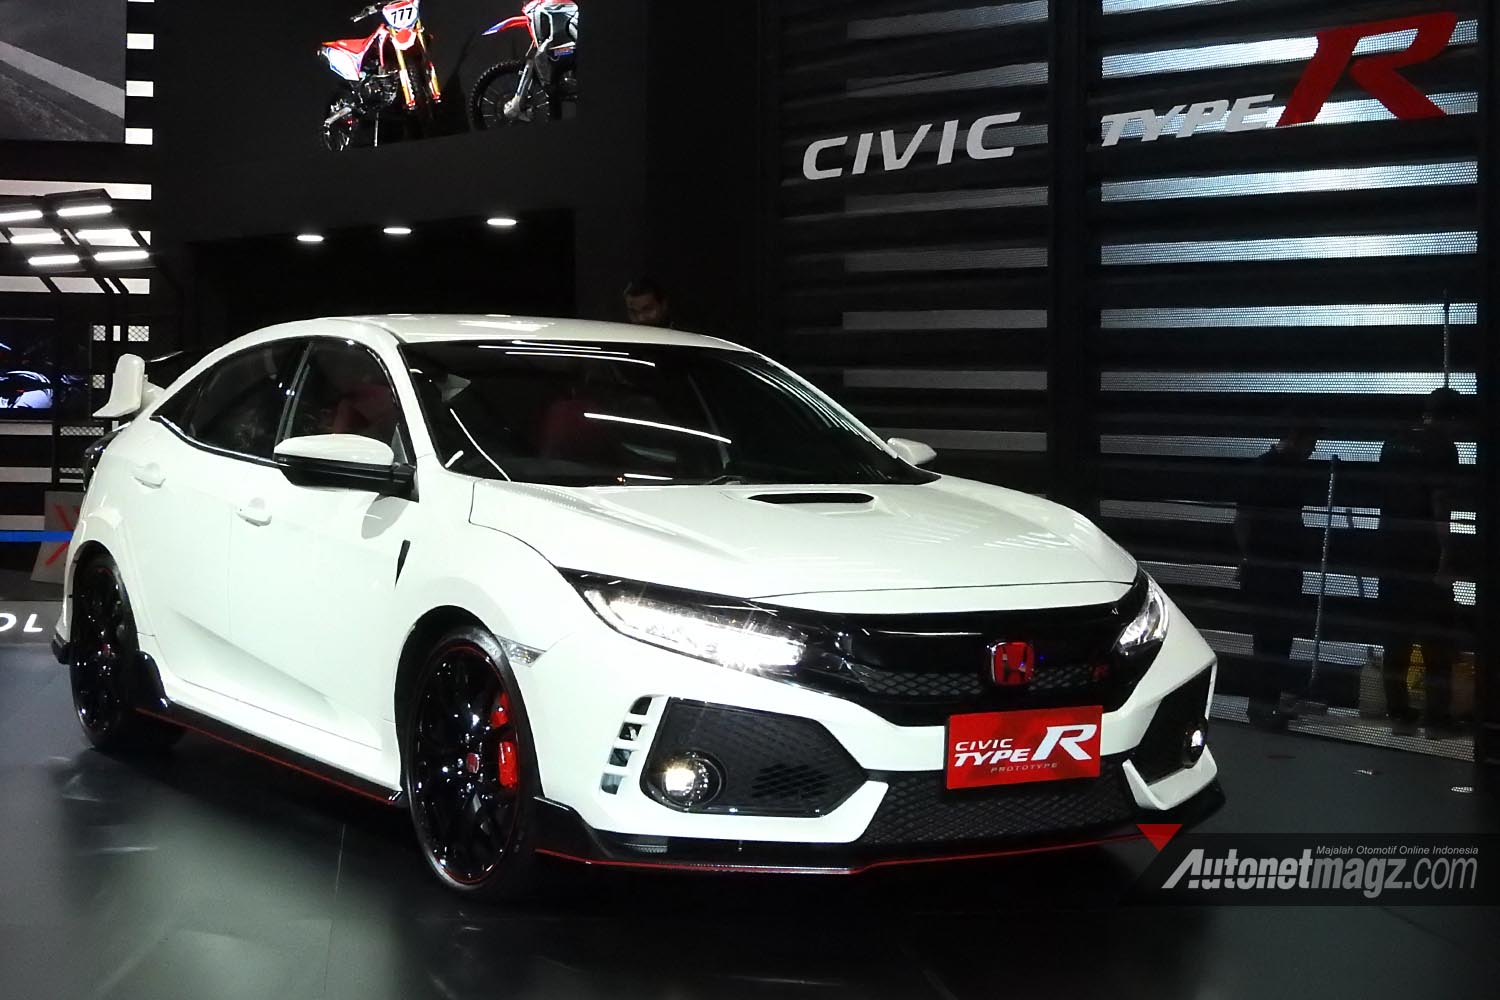 Honda Civic Rs >> First Impression Review Honda Civic Type R 2017 Indonesia